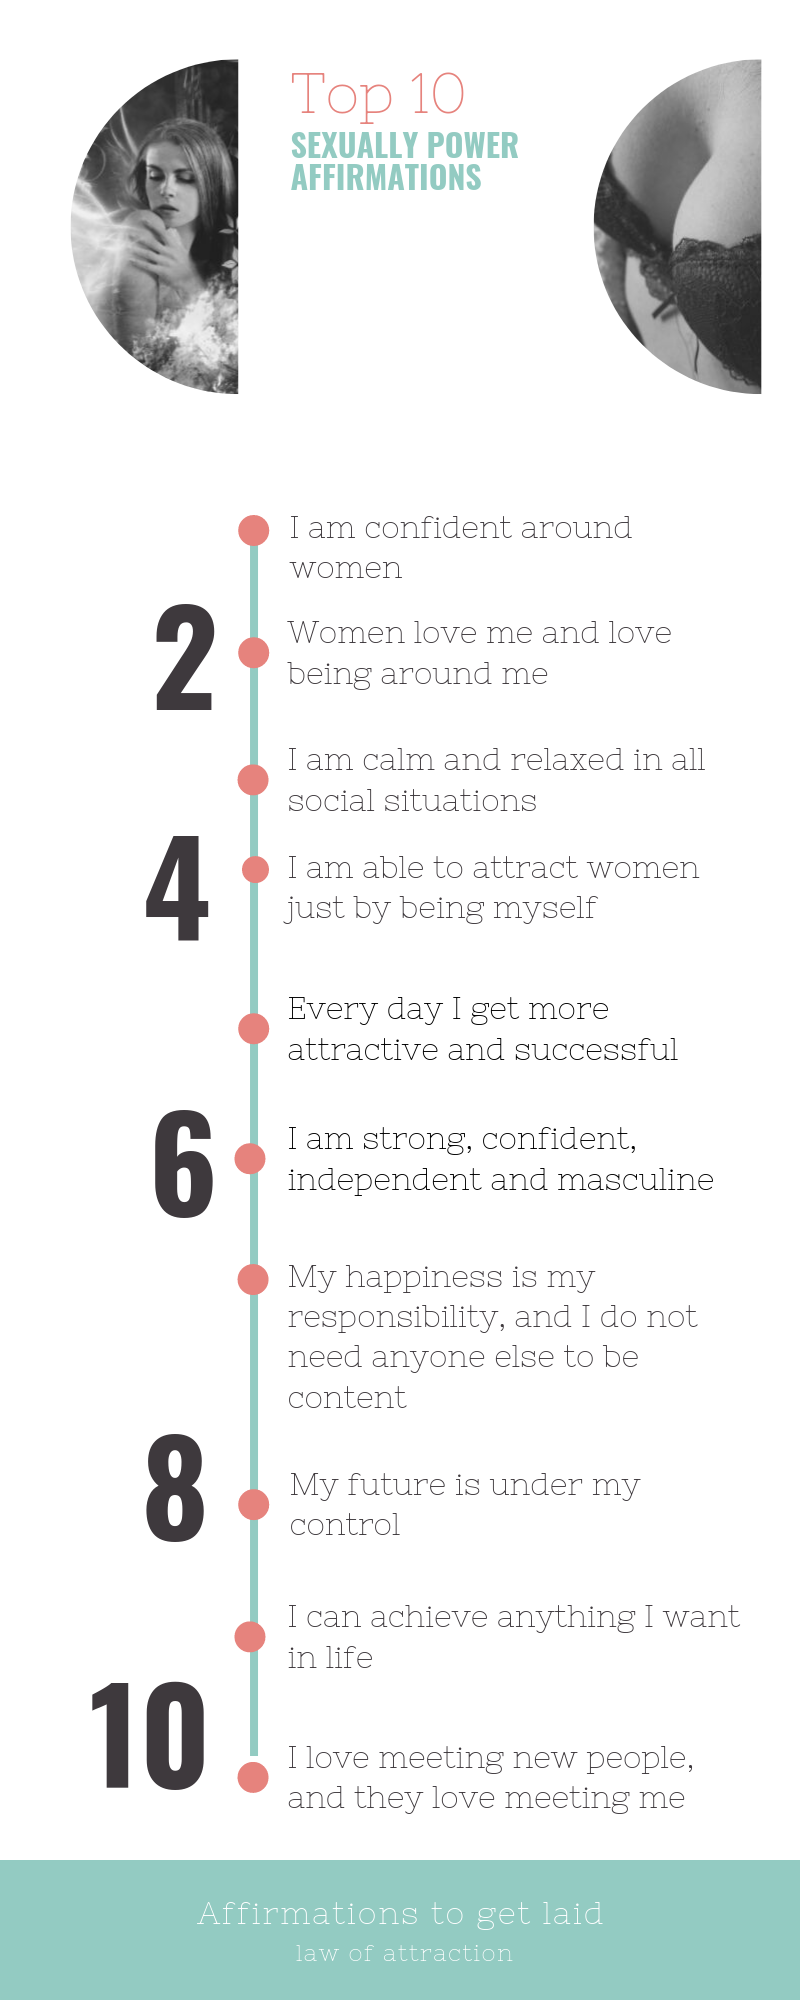 Top 10 Sexually Power Affirmations Law Of Attraction Attraction How To Get